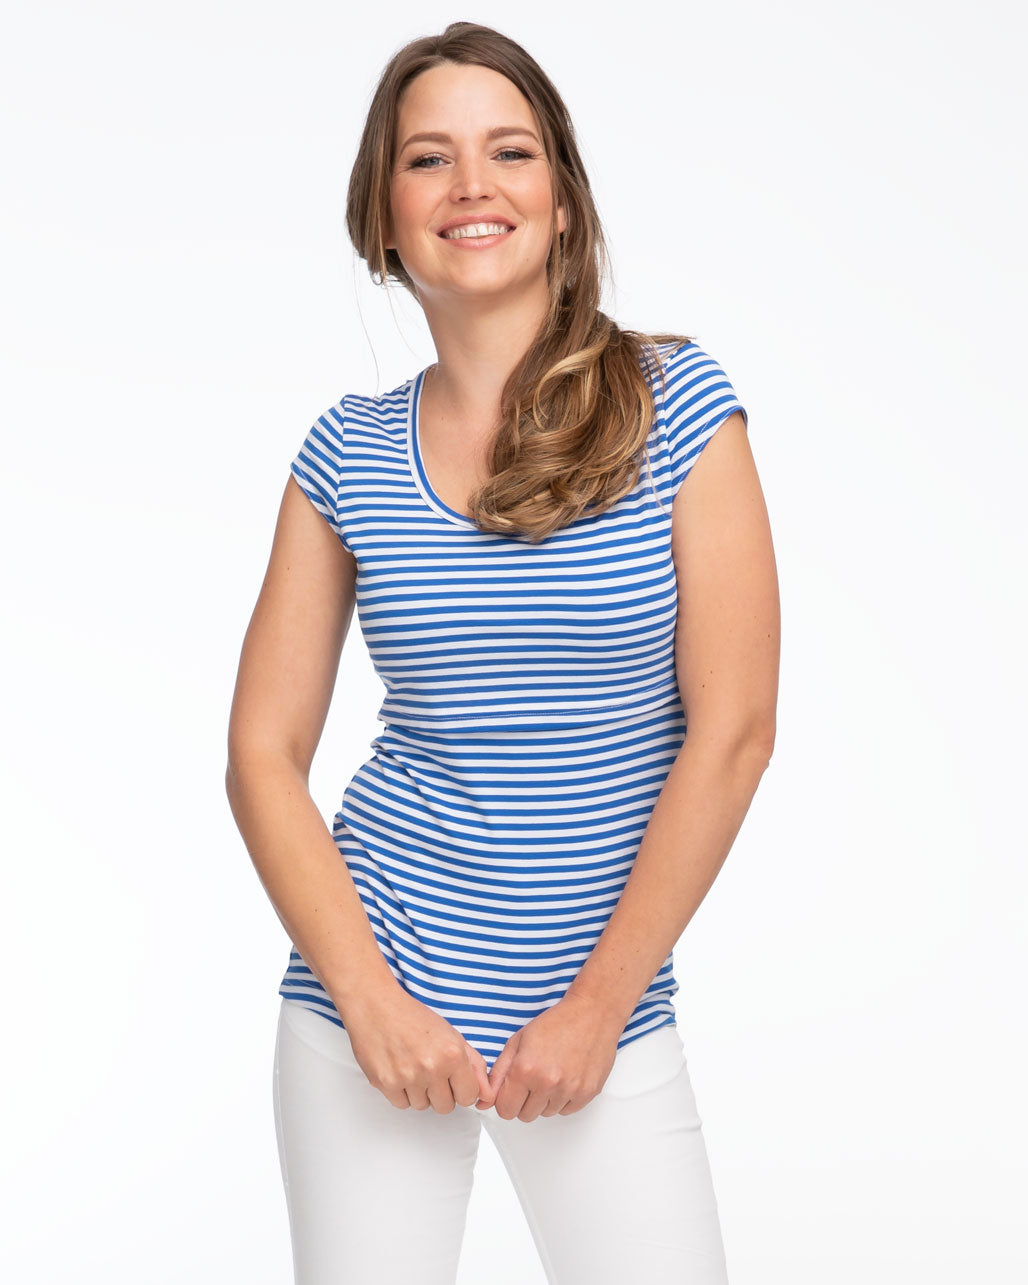 Blue stripe cap sleeve breastfeeding top by Peachymama - 1